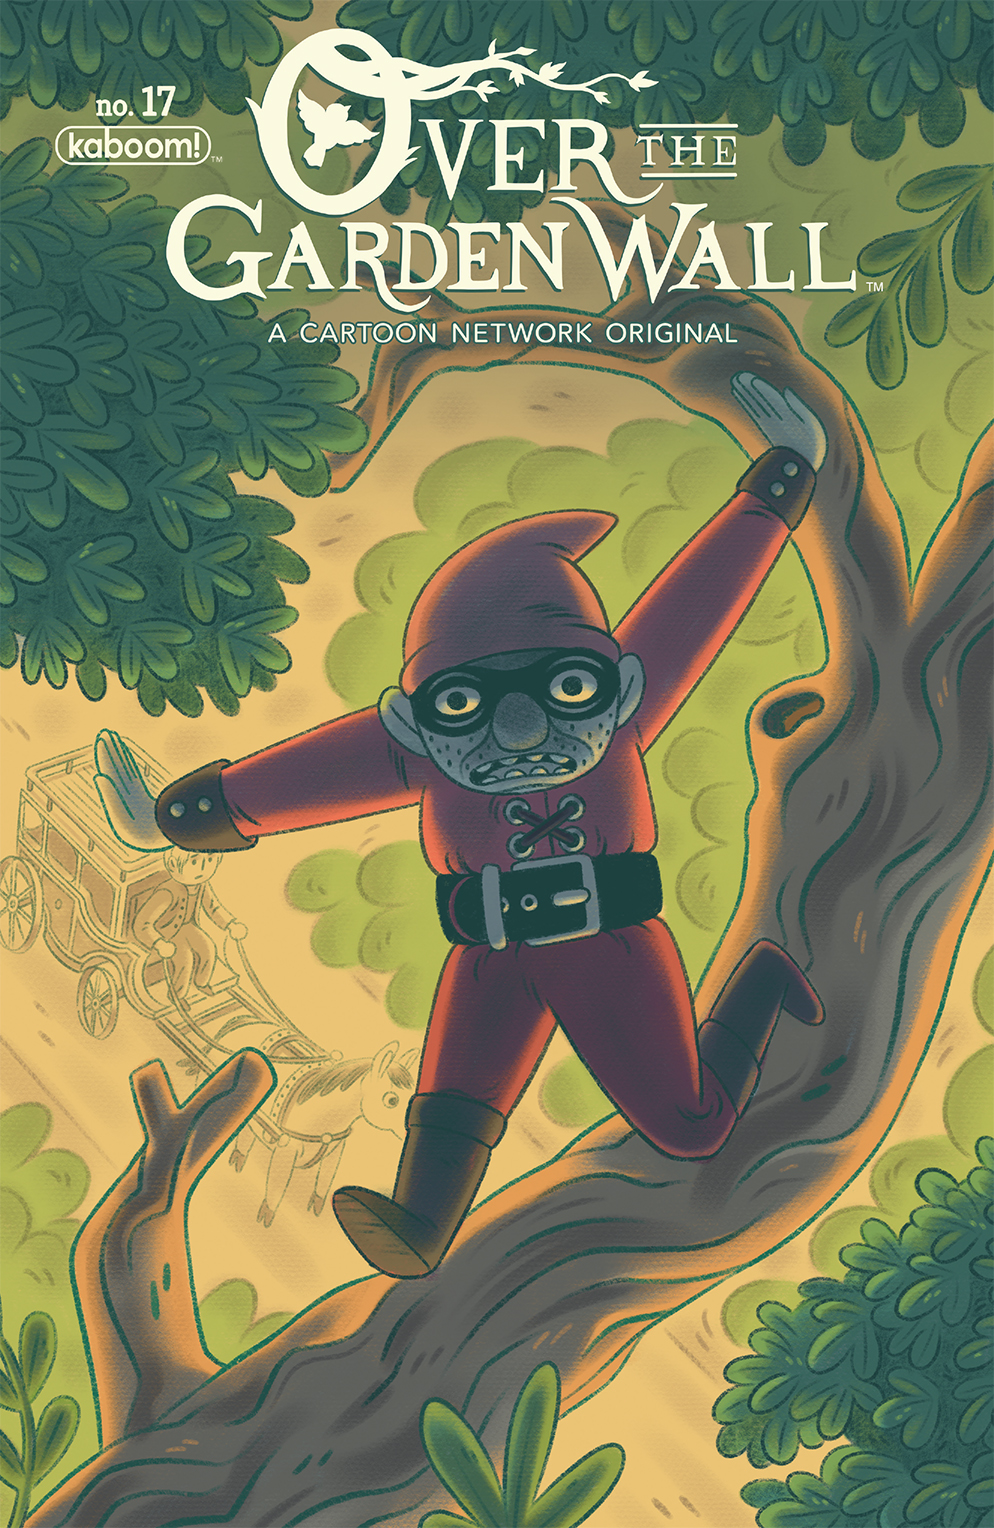 OVER THE GARDEN WALL #17